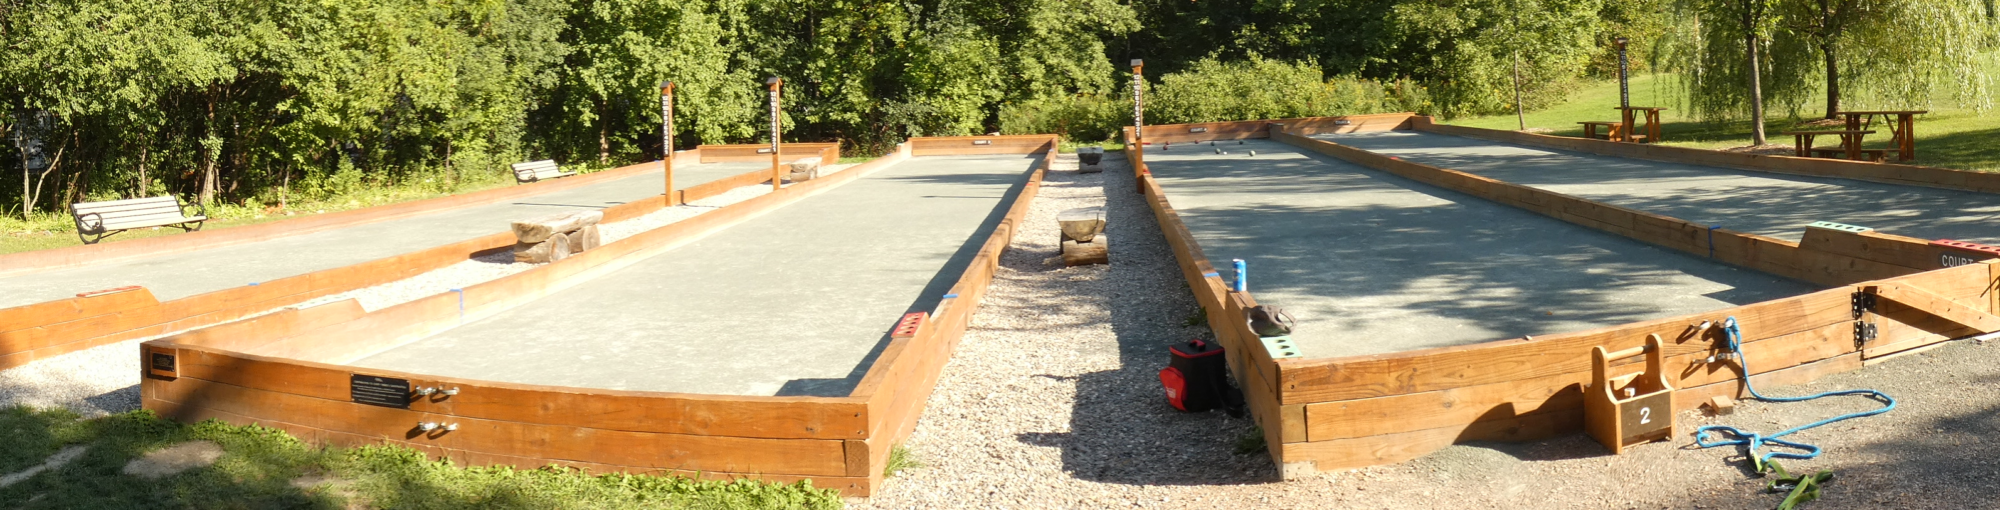 Burlington Bocce Club